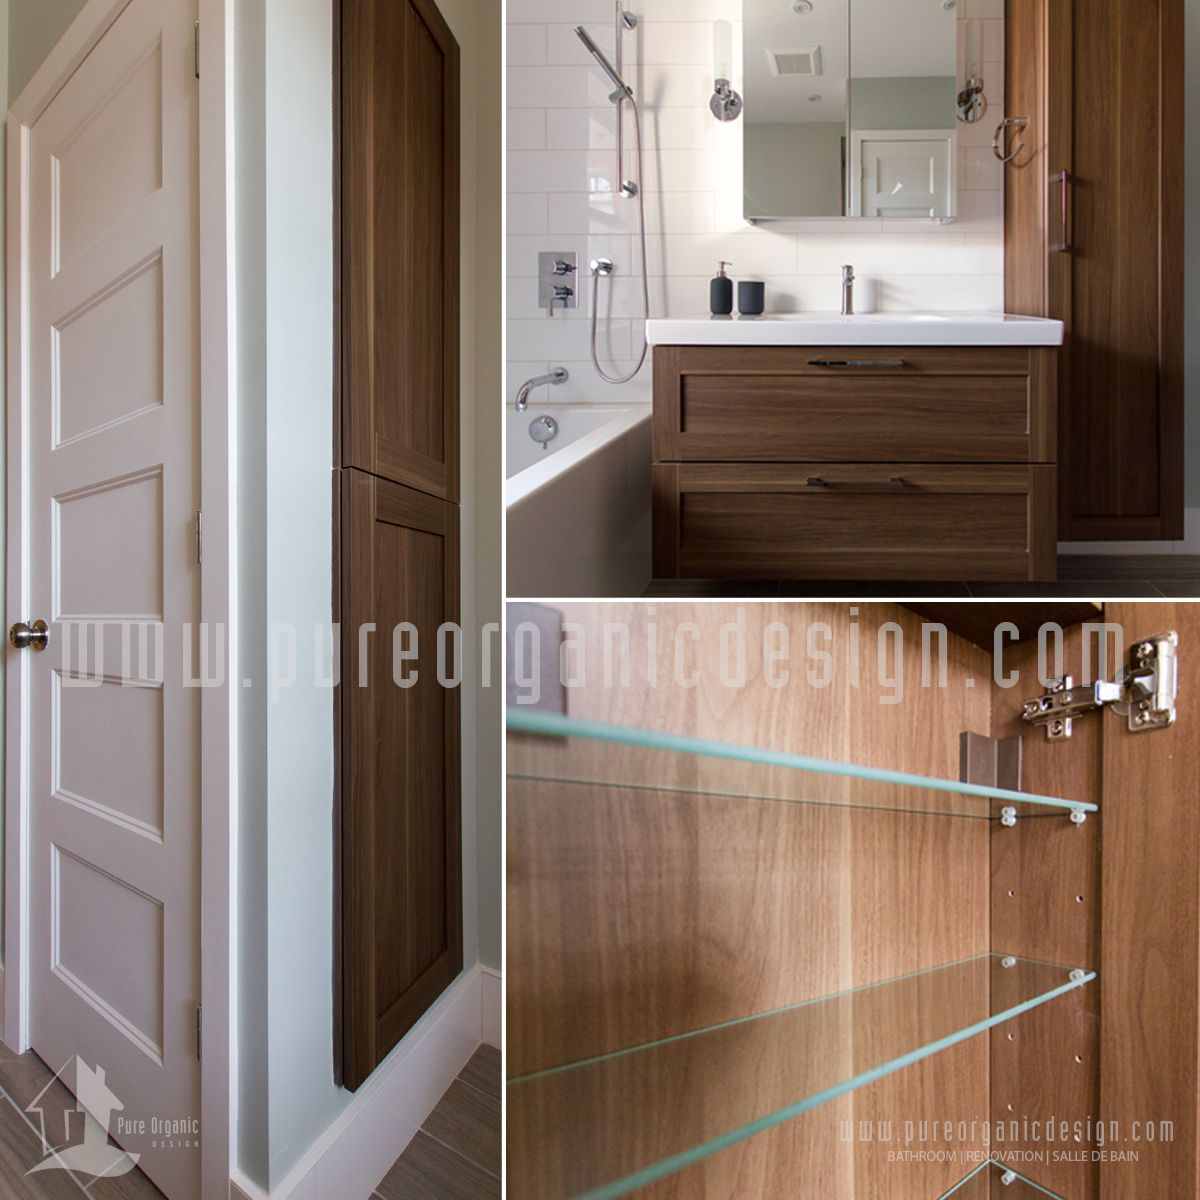 Bathroom design and renovation project realized by pure organic